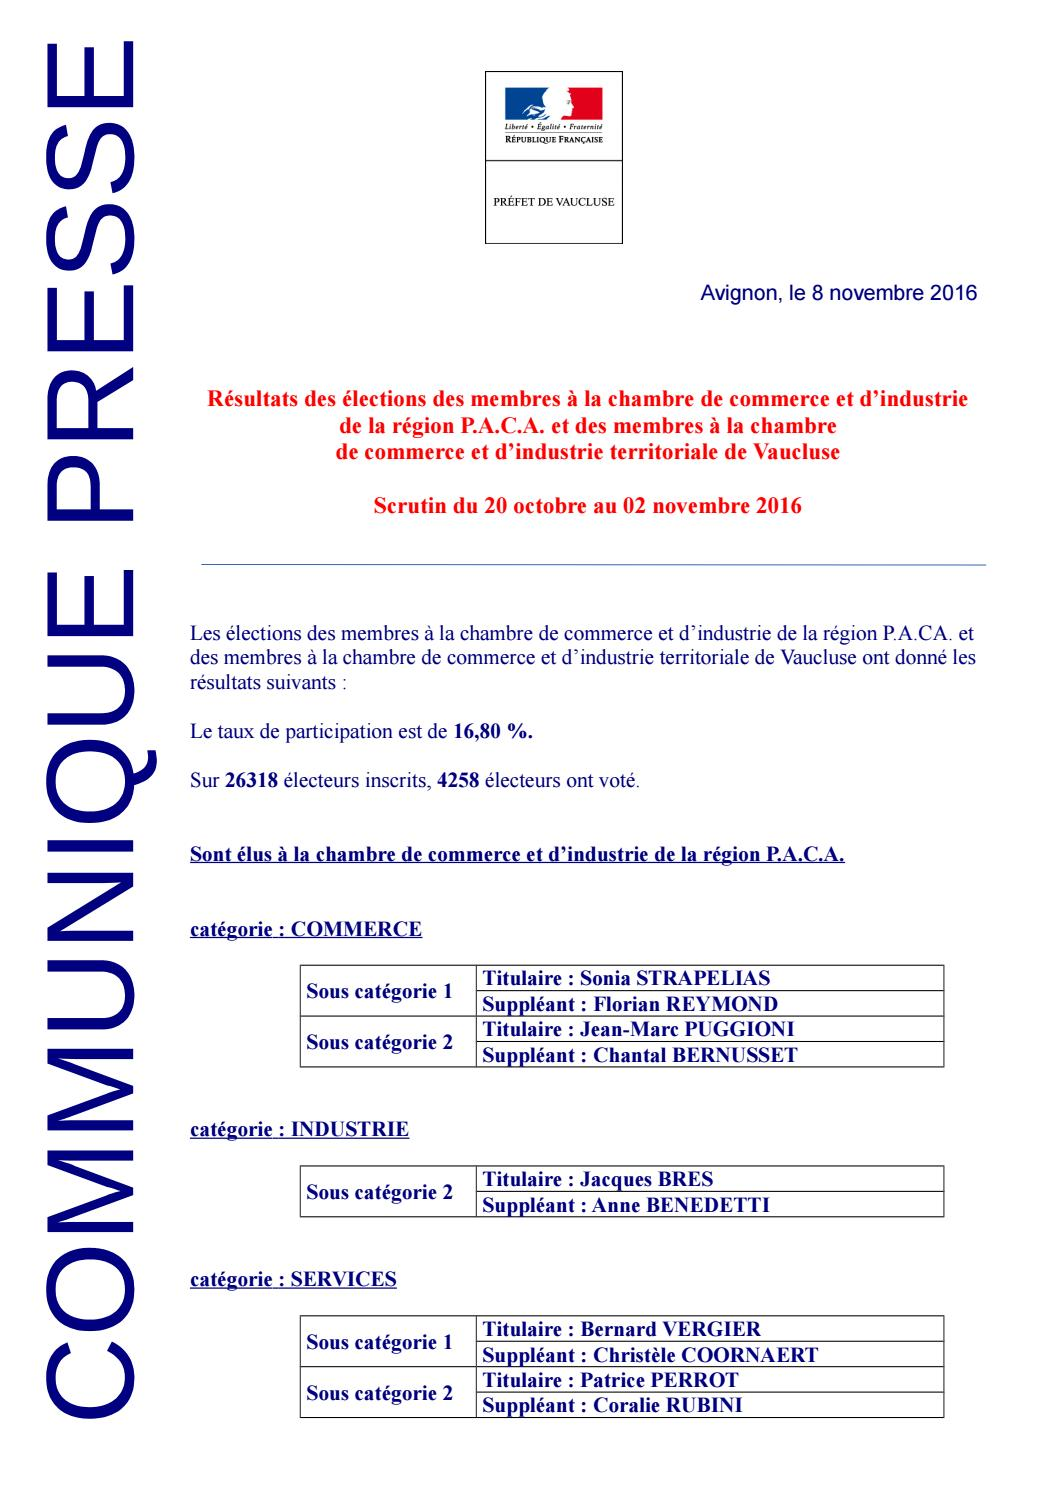 Liste des lus la cci 84 by tpbm issuu for Chambre de commerce d avignon